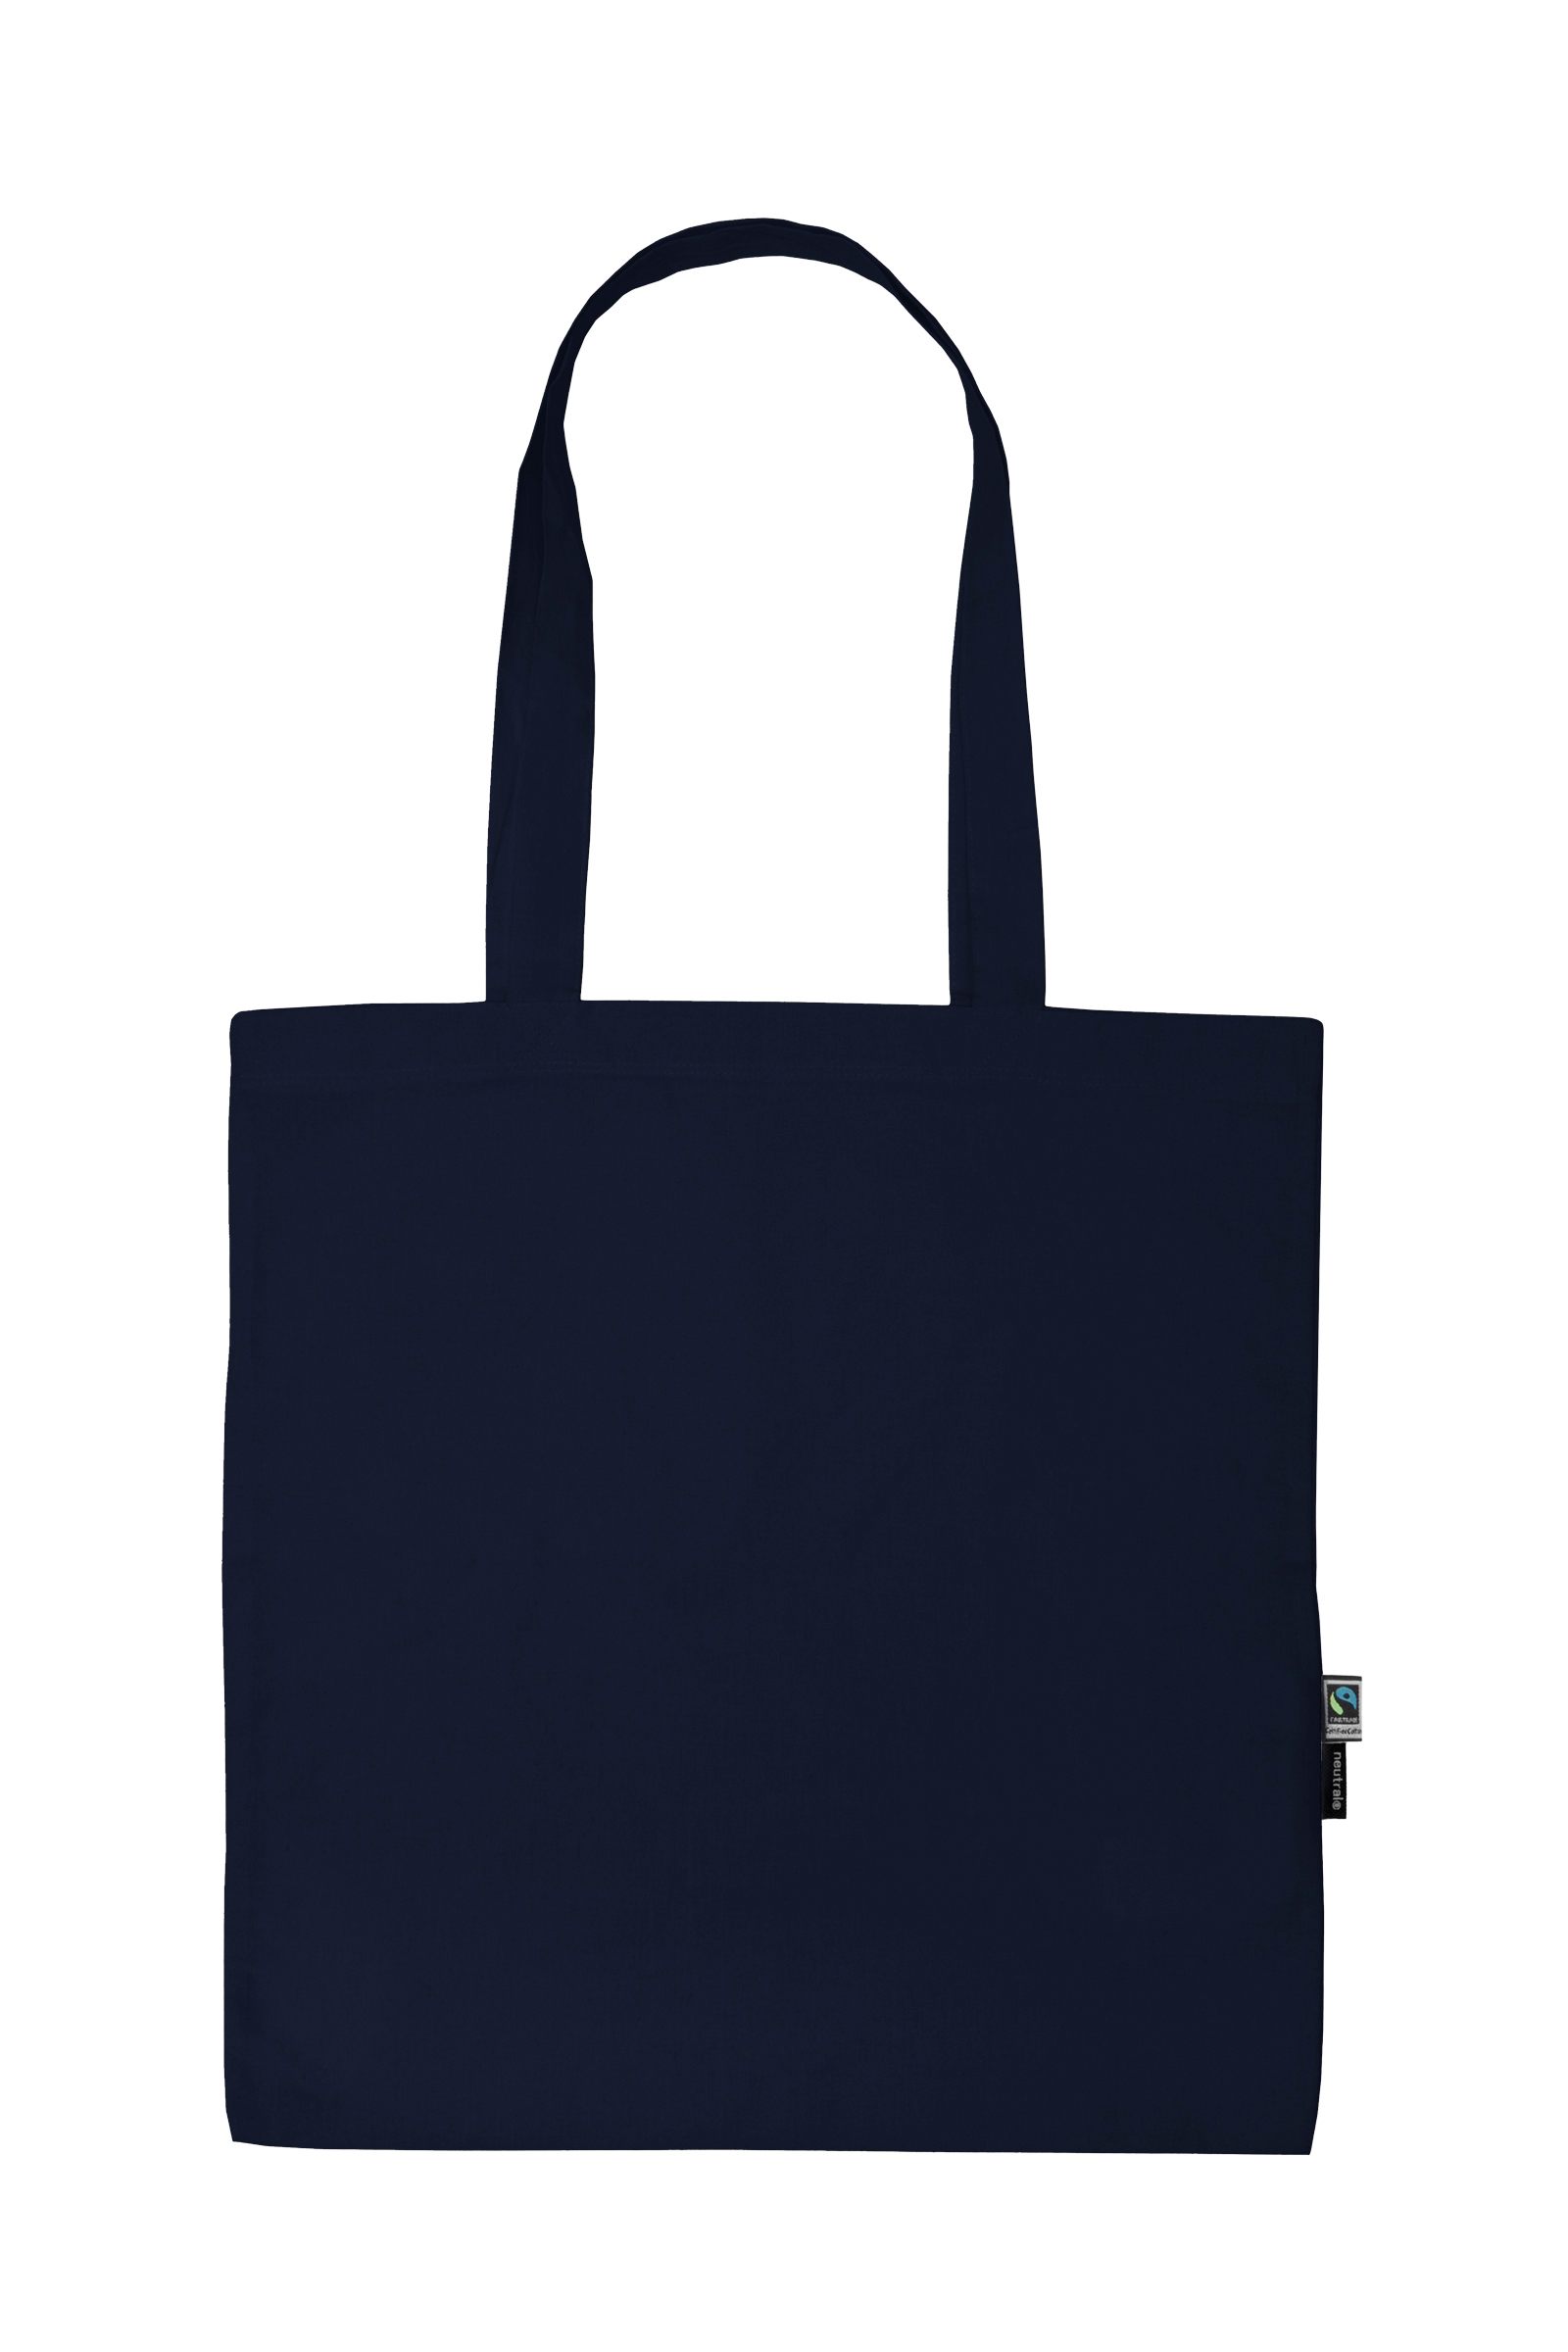 Neutral Shopping Bag w. Long Handles Navy